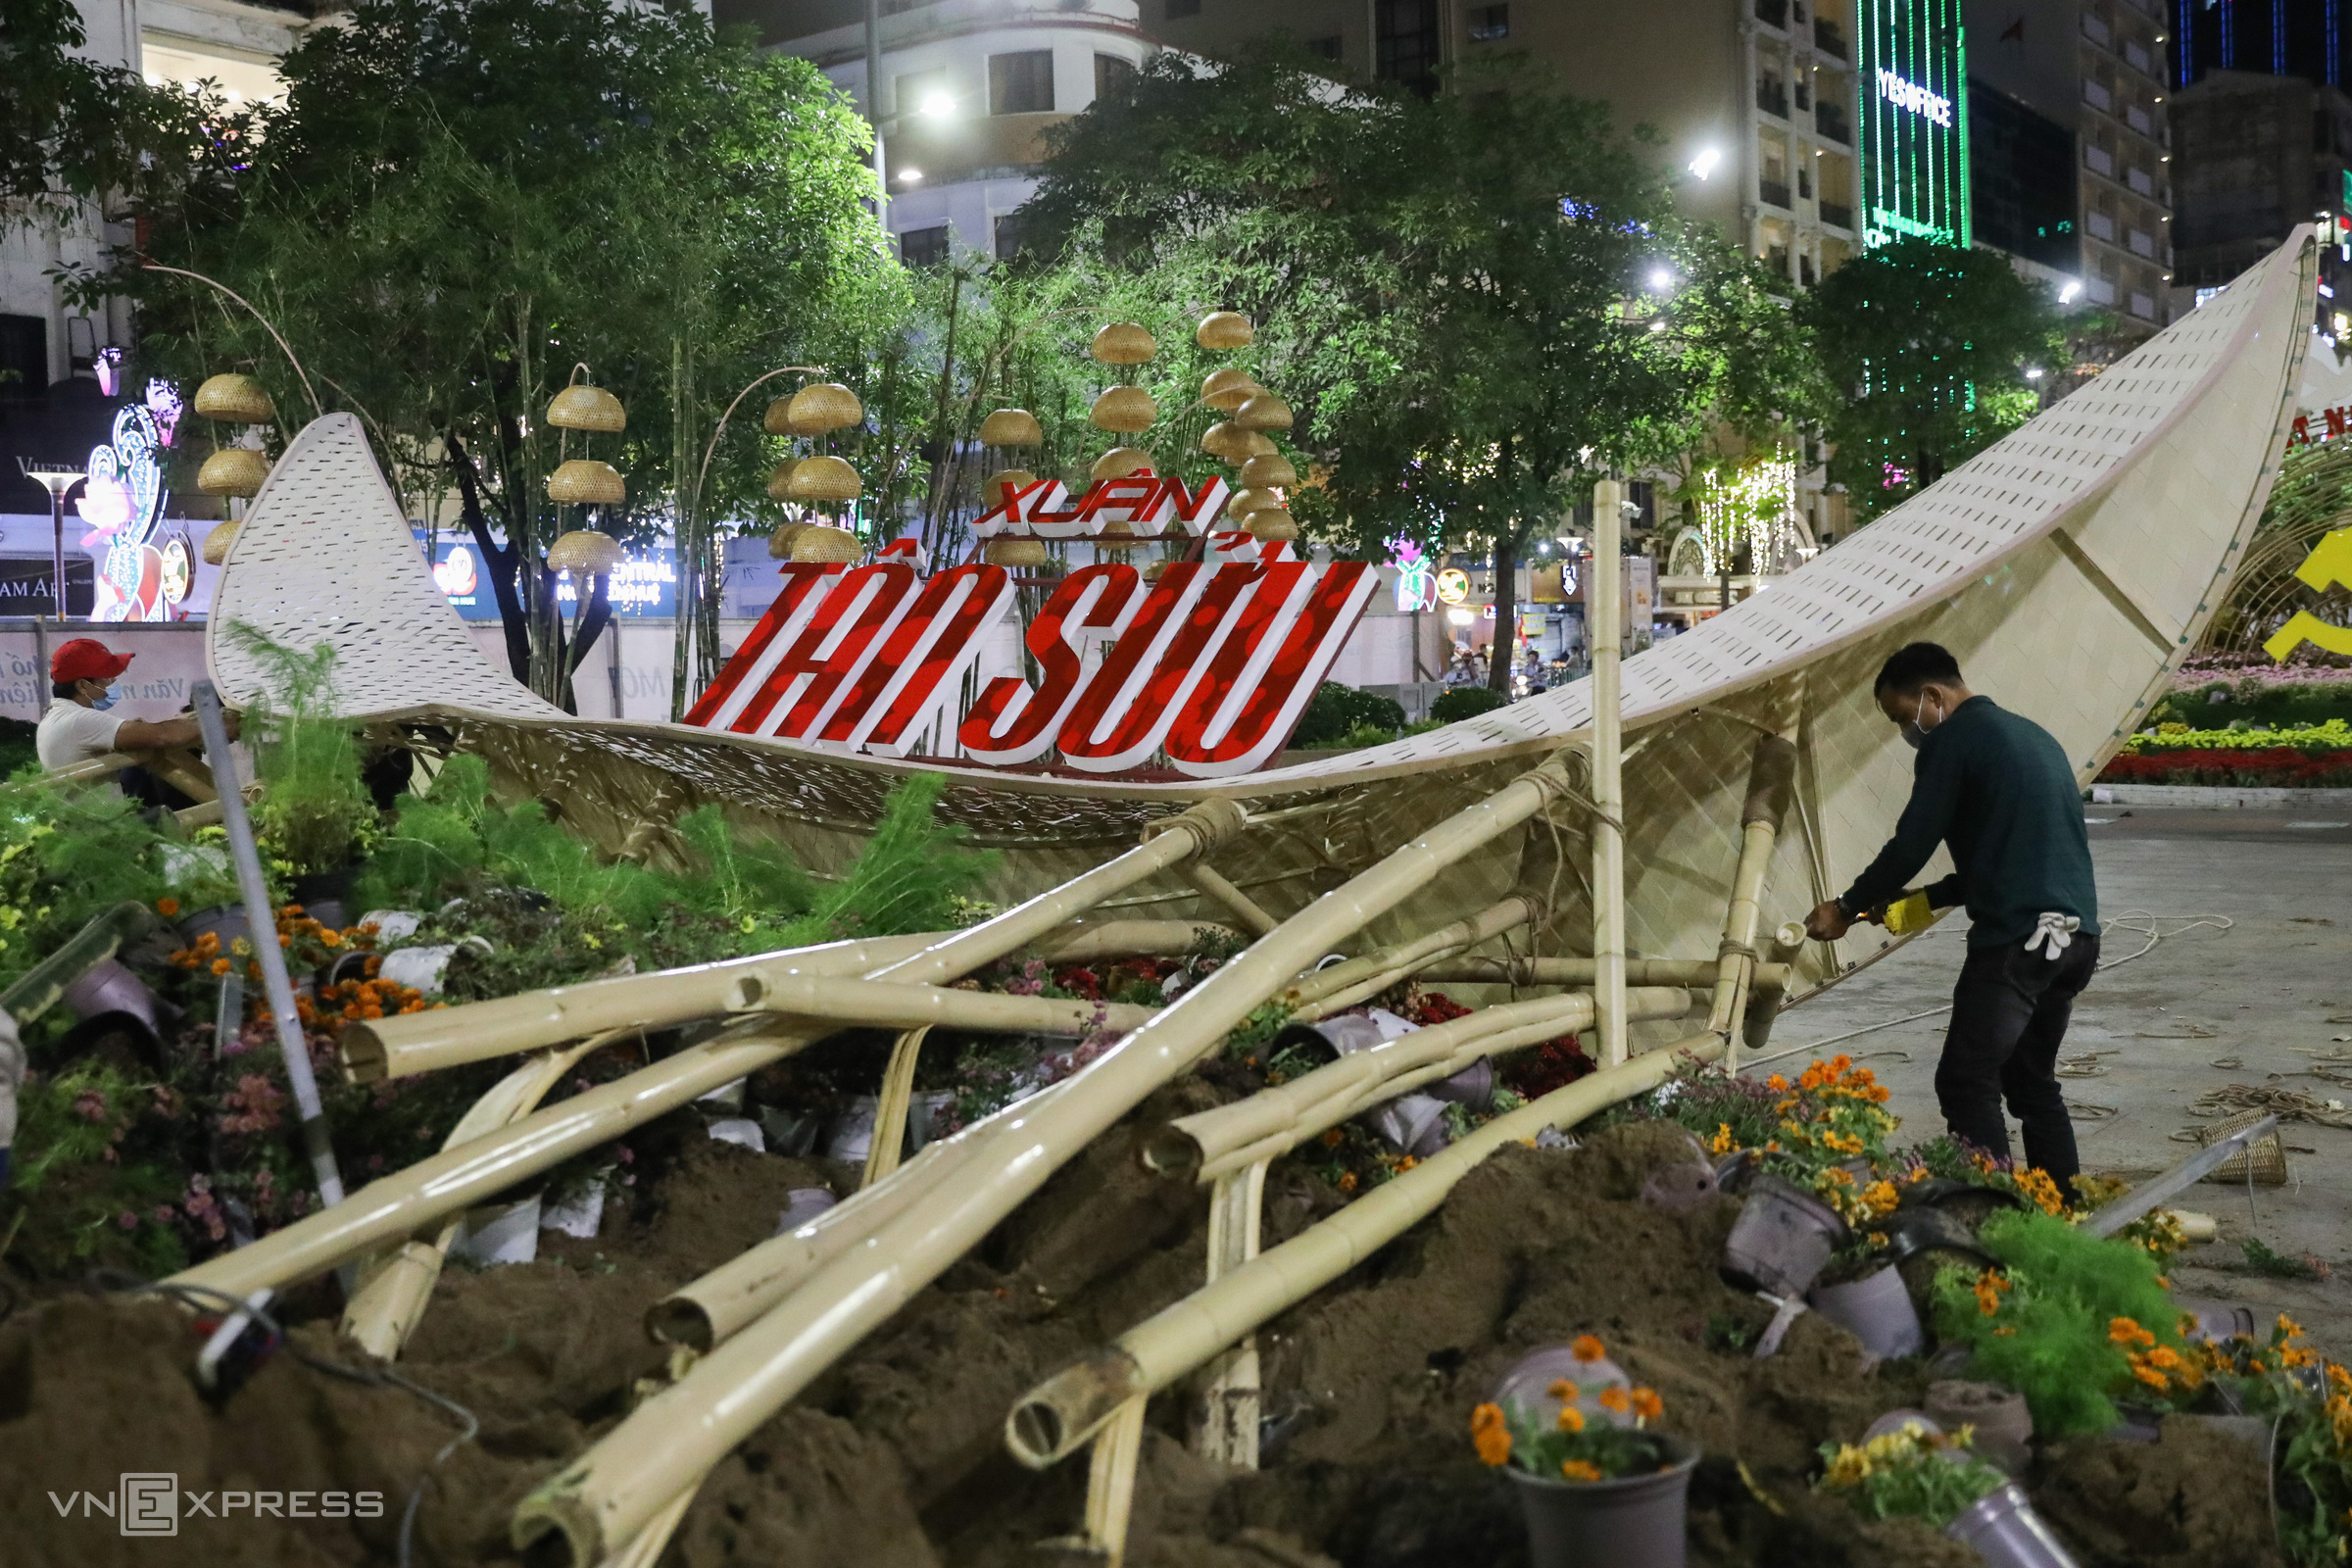 A welcome gate on Nguyen Hue flower street in District 1 is dismantled following a festive week. This year, the flower street, one of the biggest annual events in Vietnam's southern metropolis heralding Lunar New Year, or Tet, was extended for another day until Tuesday, the fifth day of the first lunar month instead of closure on Sunday.